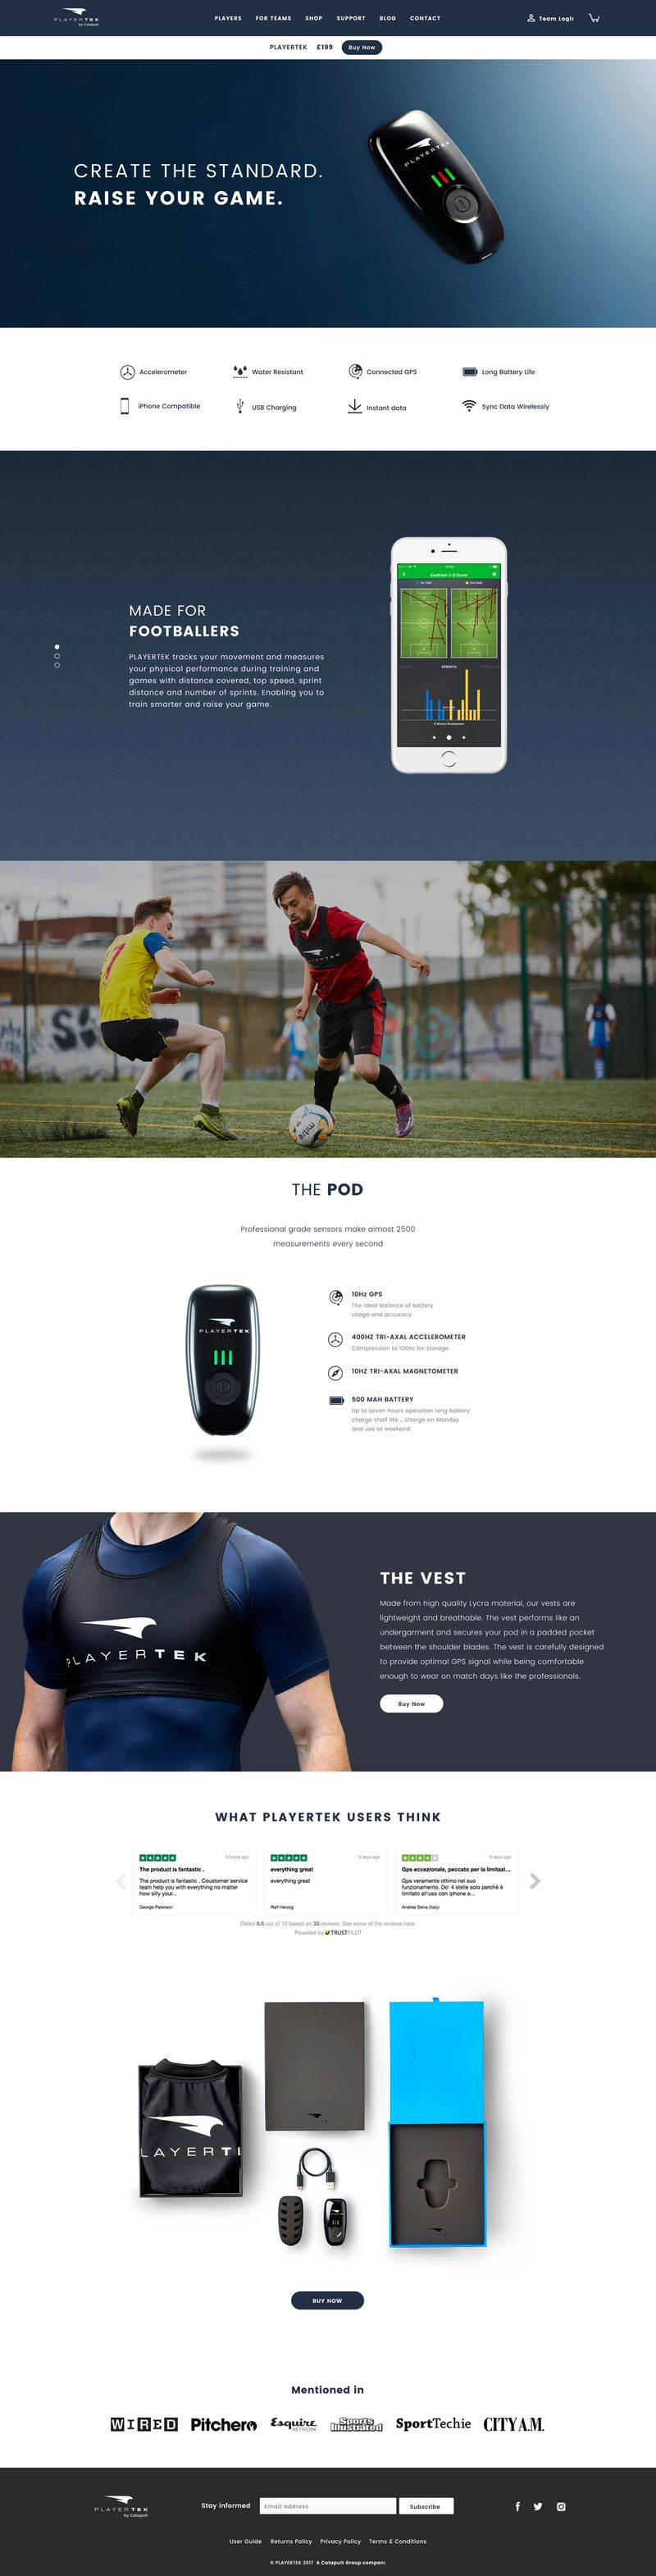 PlayerTek Product Page - Large Screen